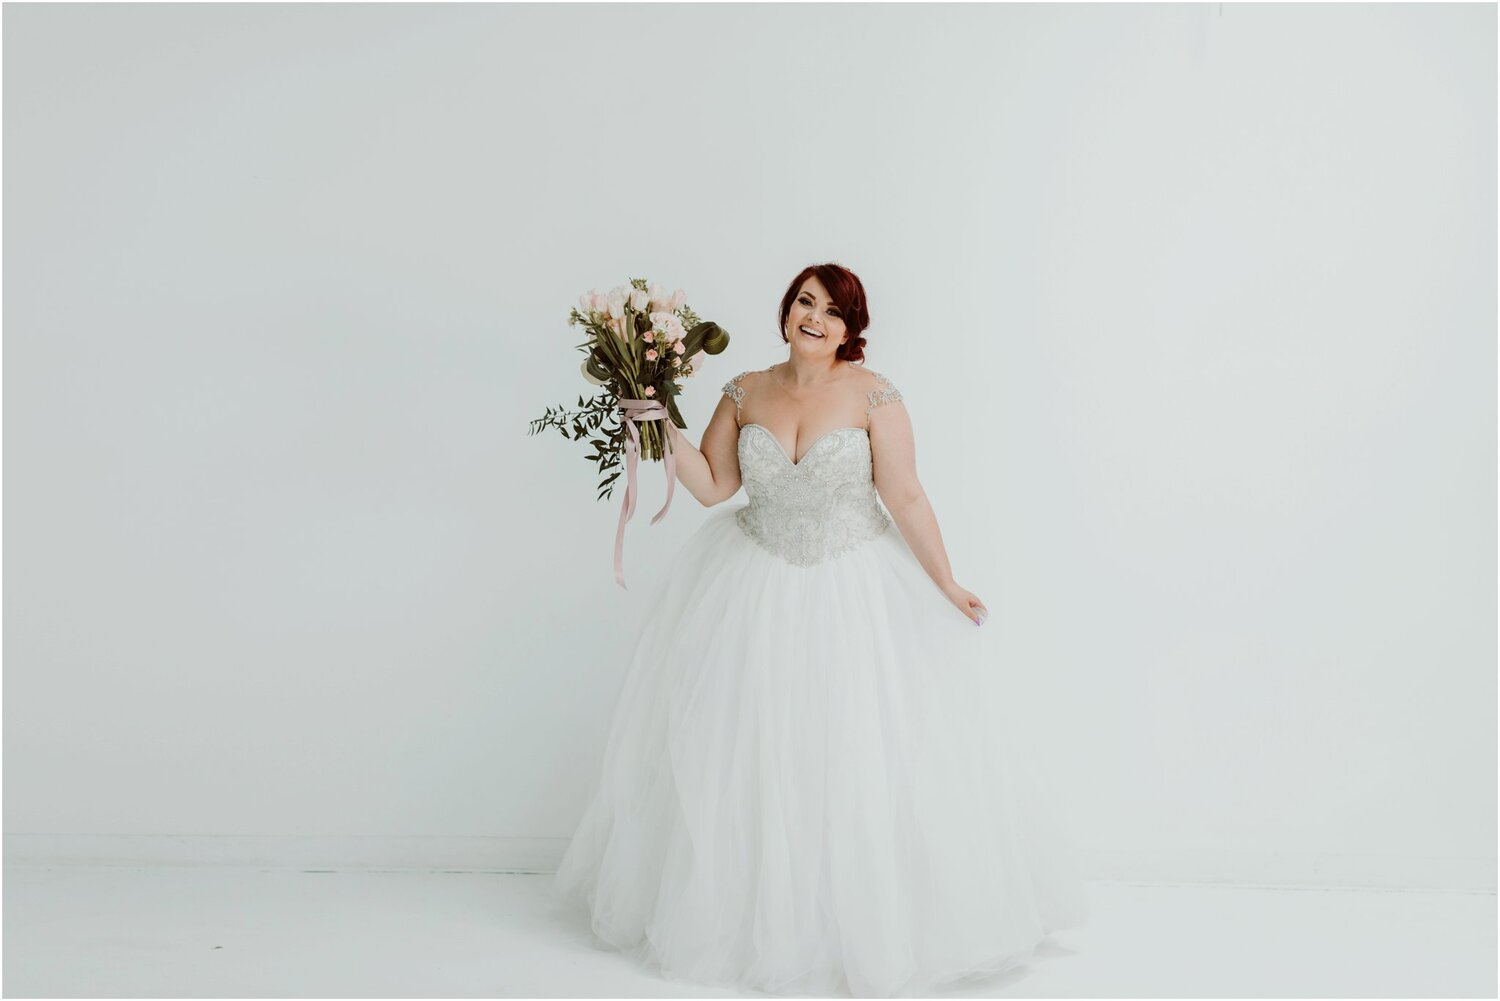 Plus Size Ball Gowns Uptown Bride,Plus Size Wedding Dresses